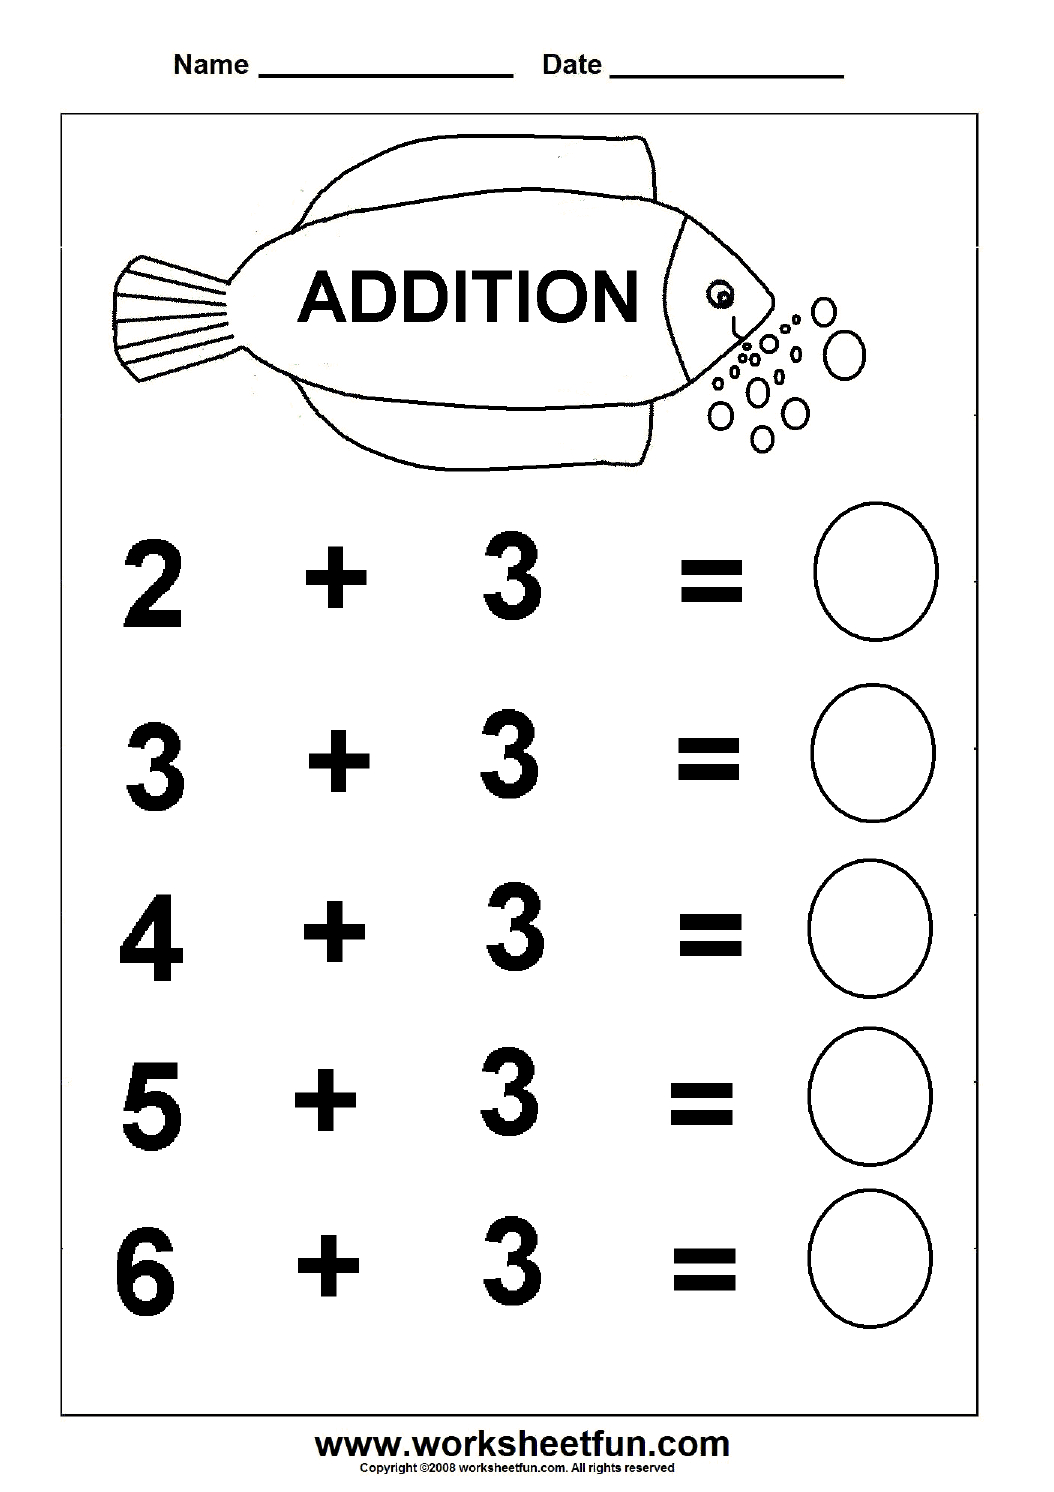 Beginner Addition – 6 Kindergarten Addition Worksheets / Free | Simple Addition Worksheets Printable